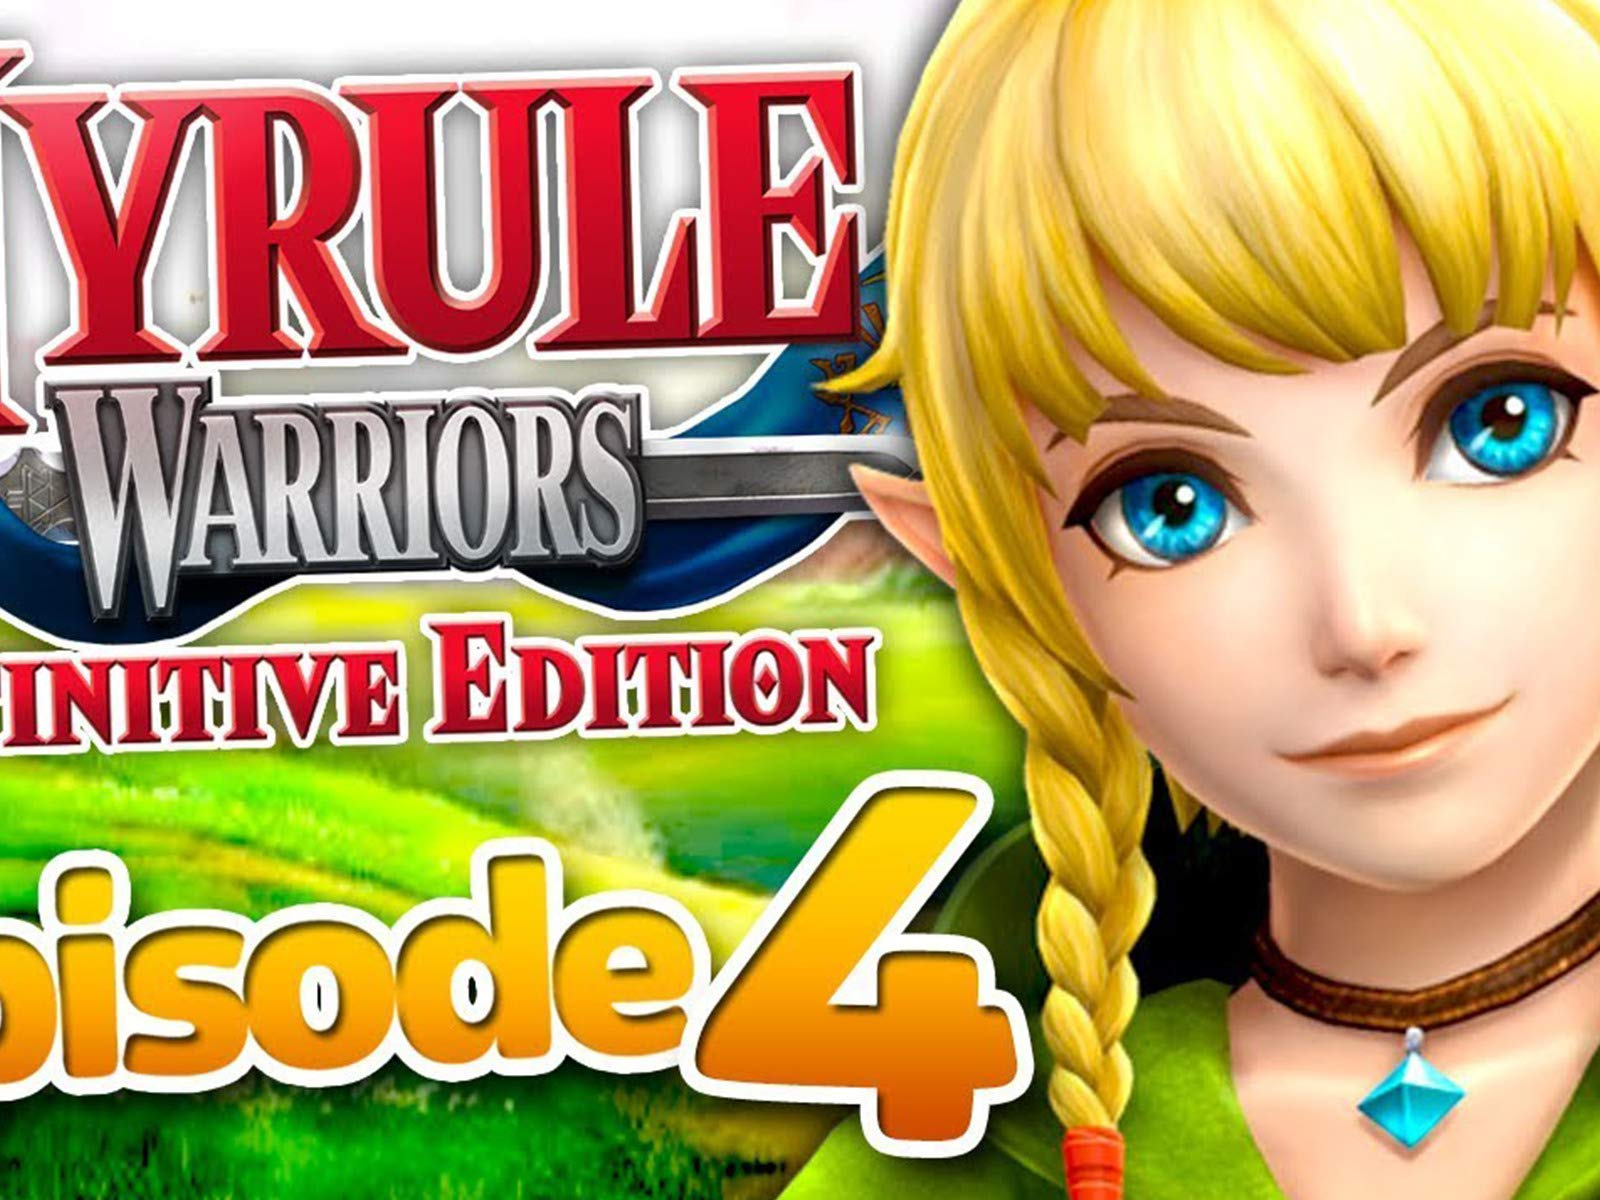 Watch Clip Hyrule Warriors Definitive Edition Gameplay Zebra Gamer Prime Video